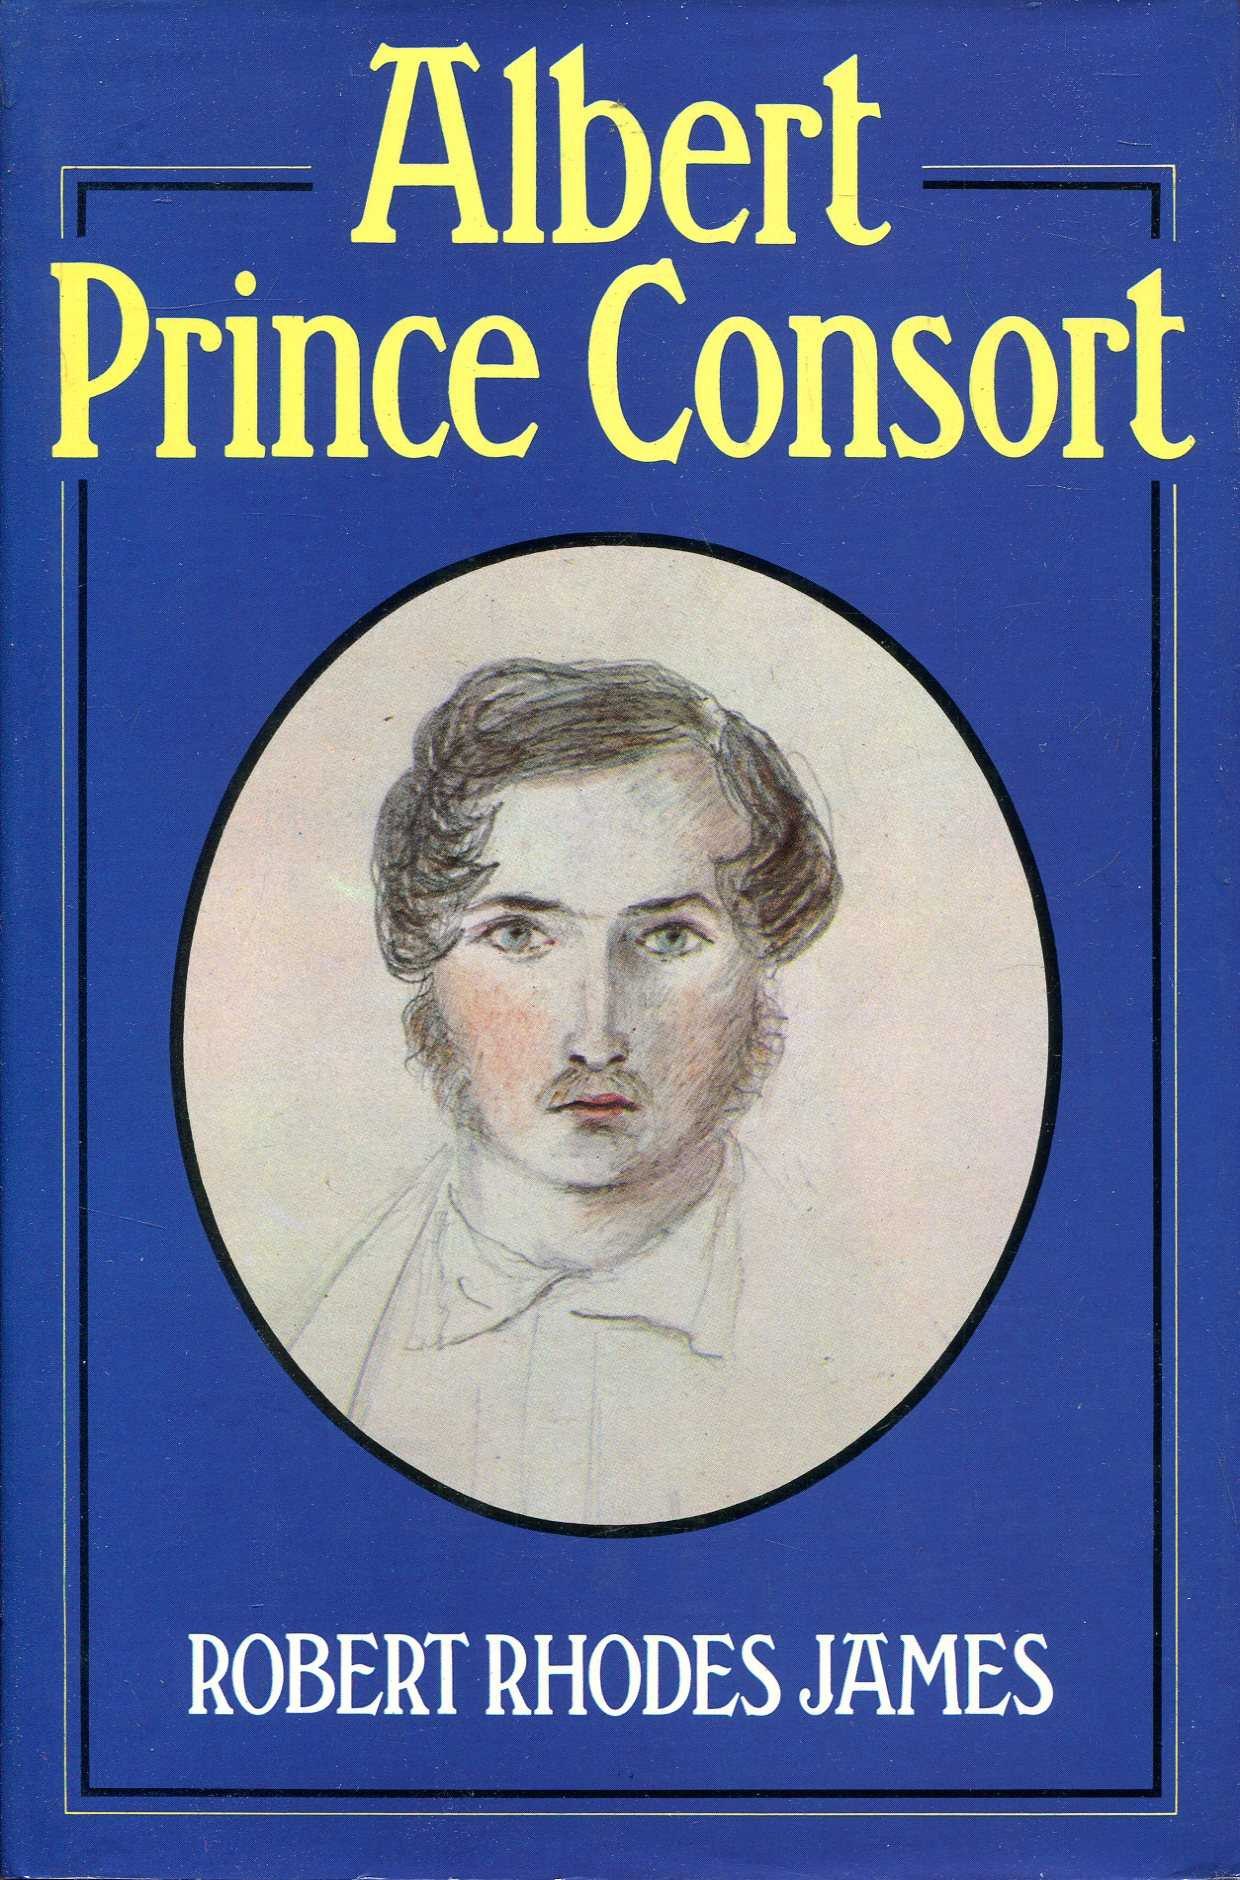 Image for Albert Prince Consort